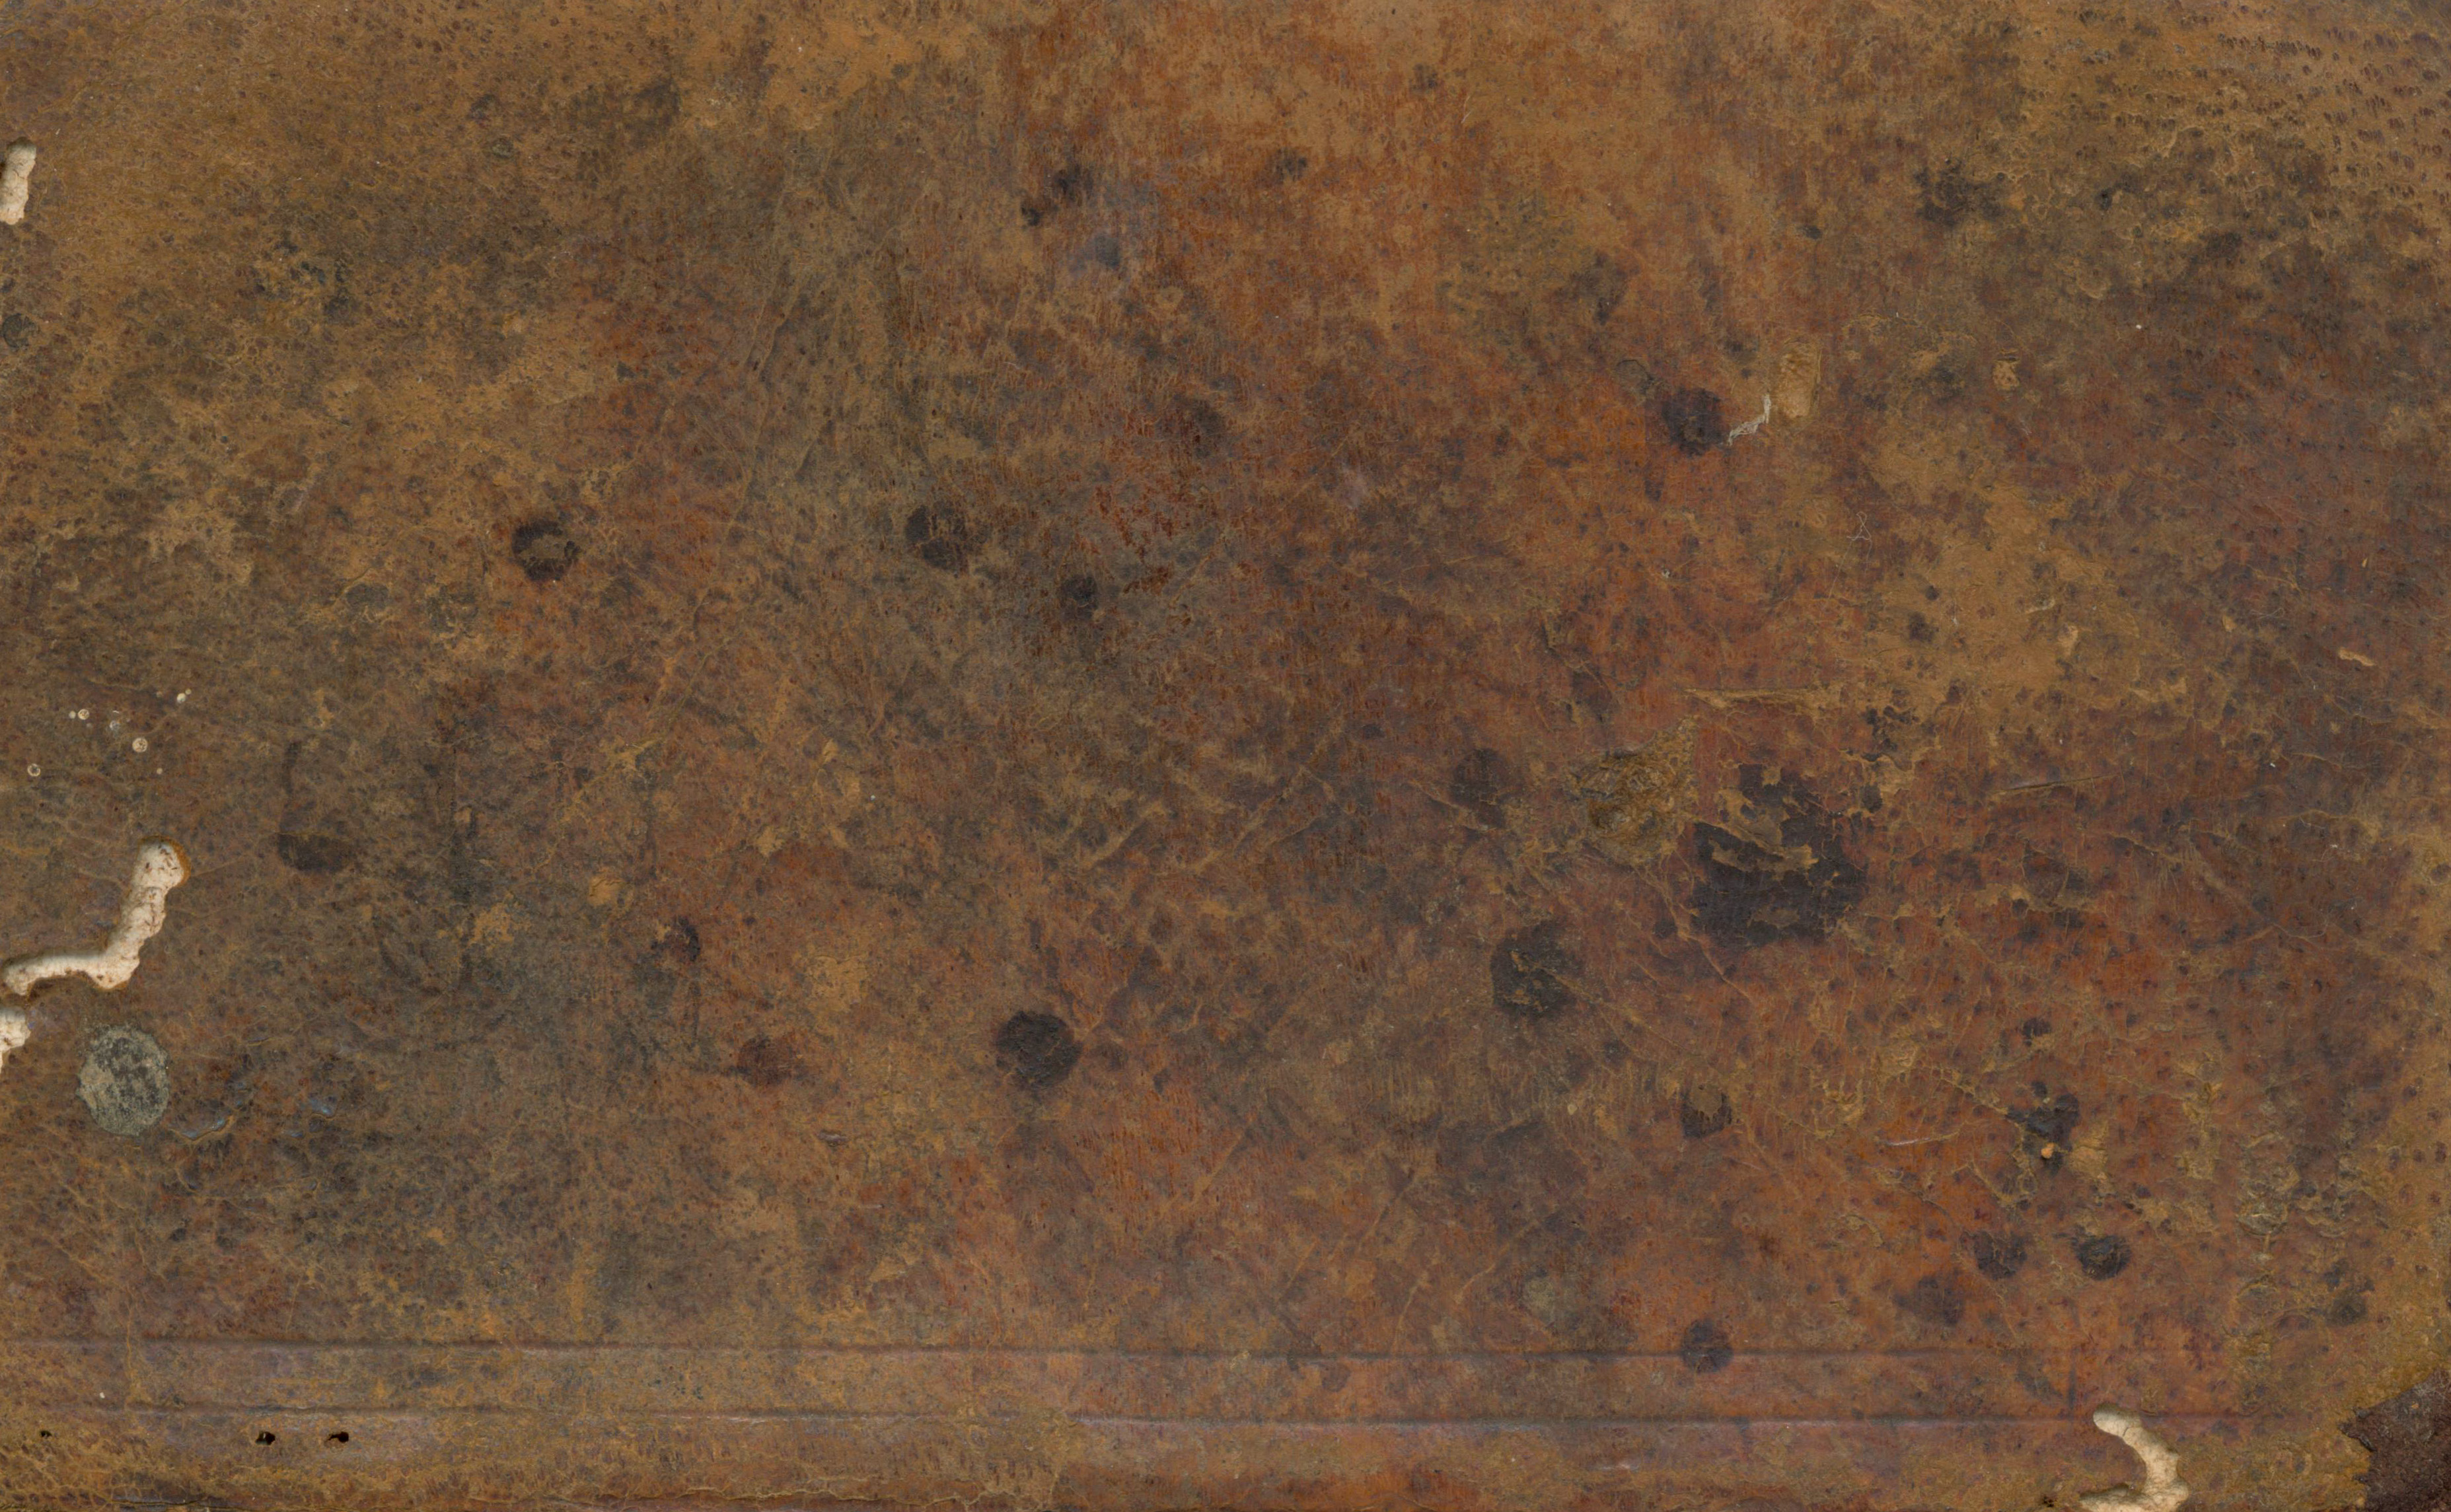 Leather Book Cover Texture : Old leather texture photoshop images distressed